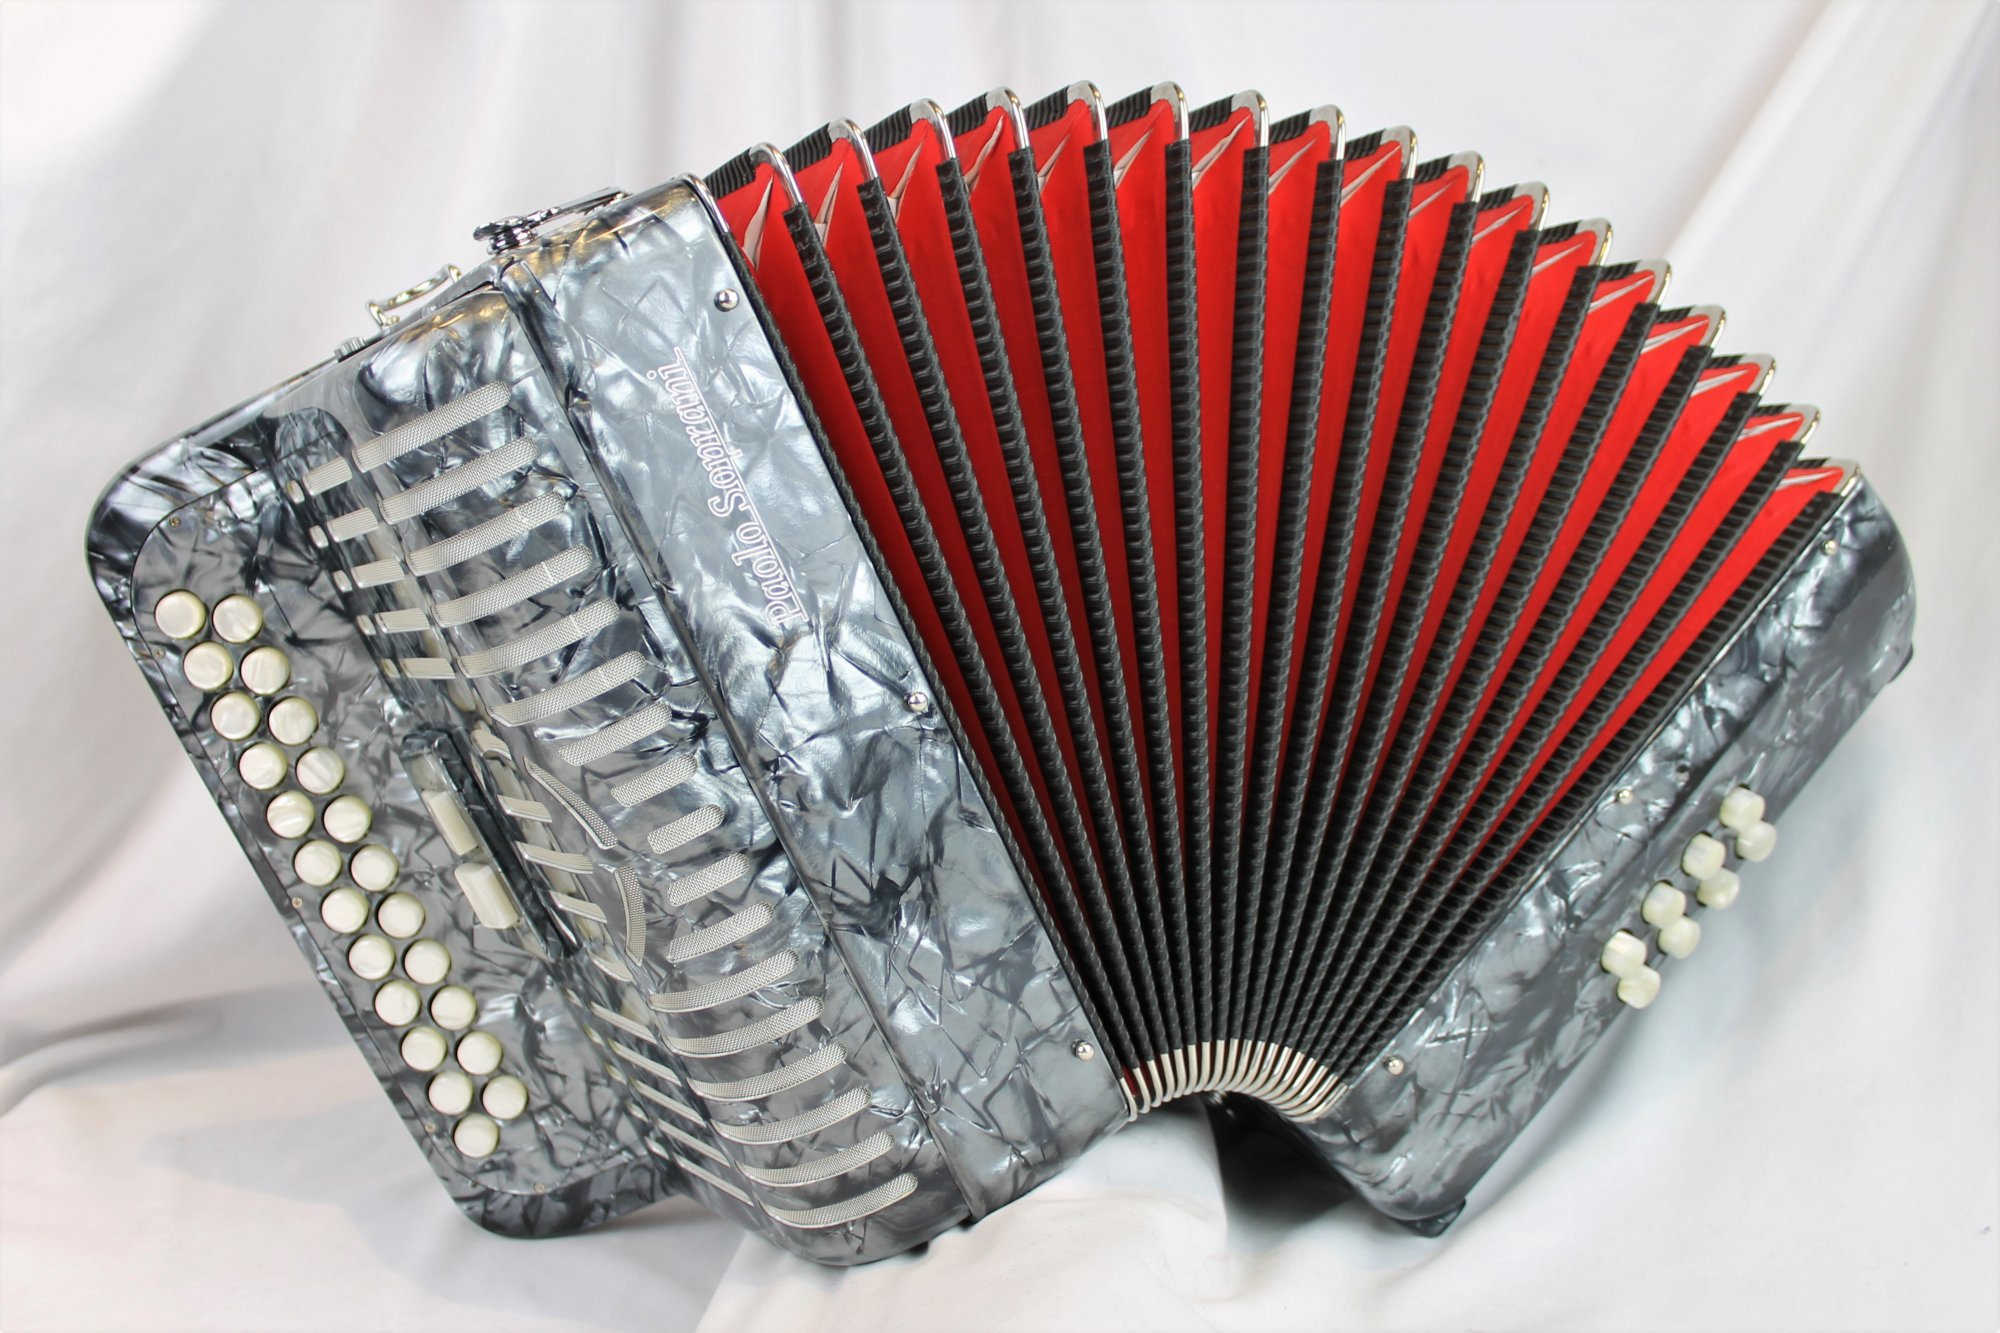 NEW Gray Paolo Soprani Jubilee IV Diatonic Button Accordion BC LMMM 23 8